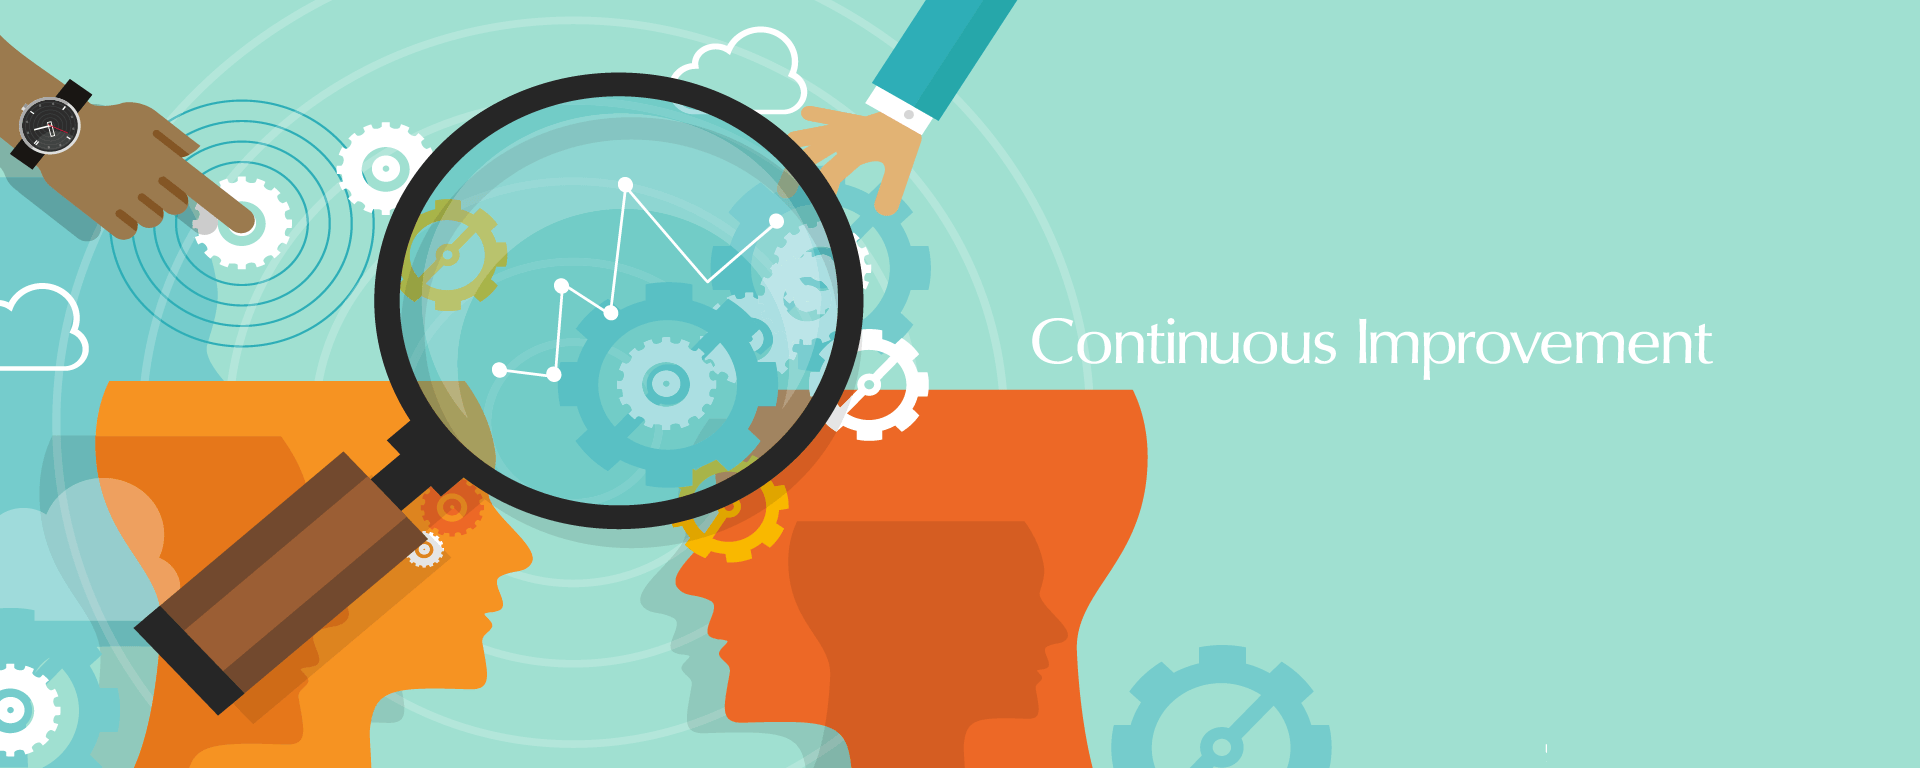 colourful graphic with the text 'continuous improvement'